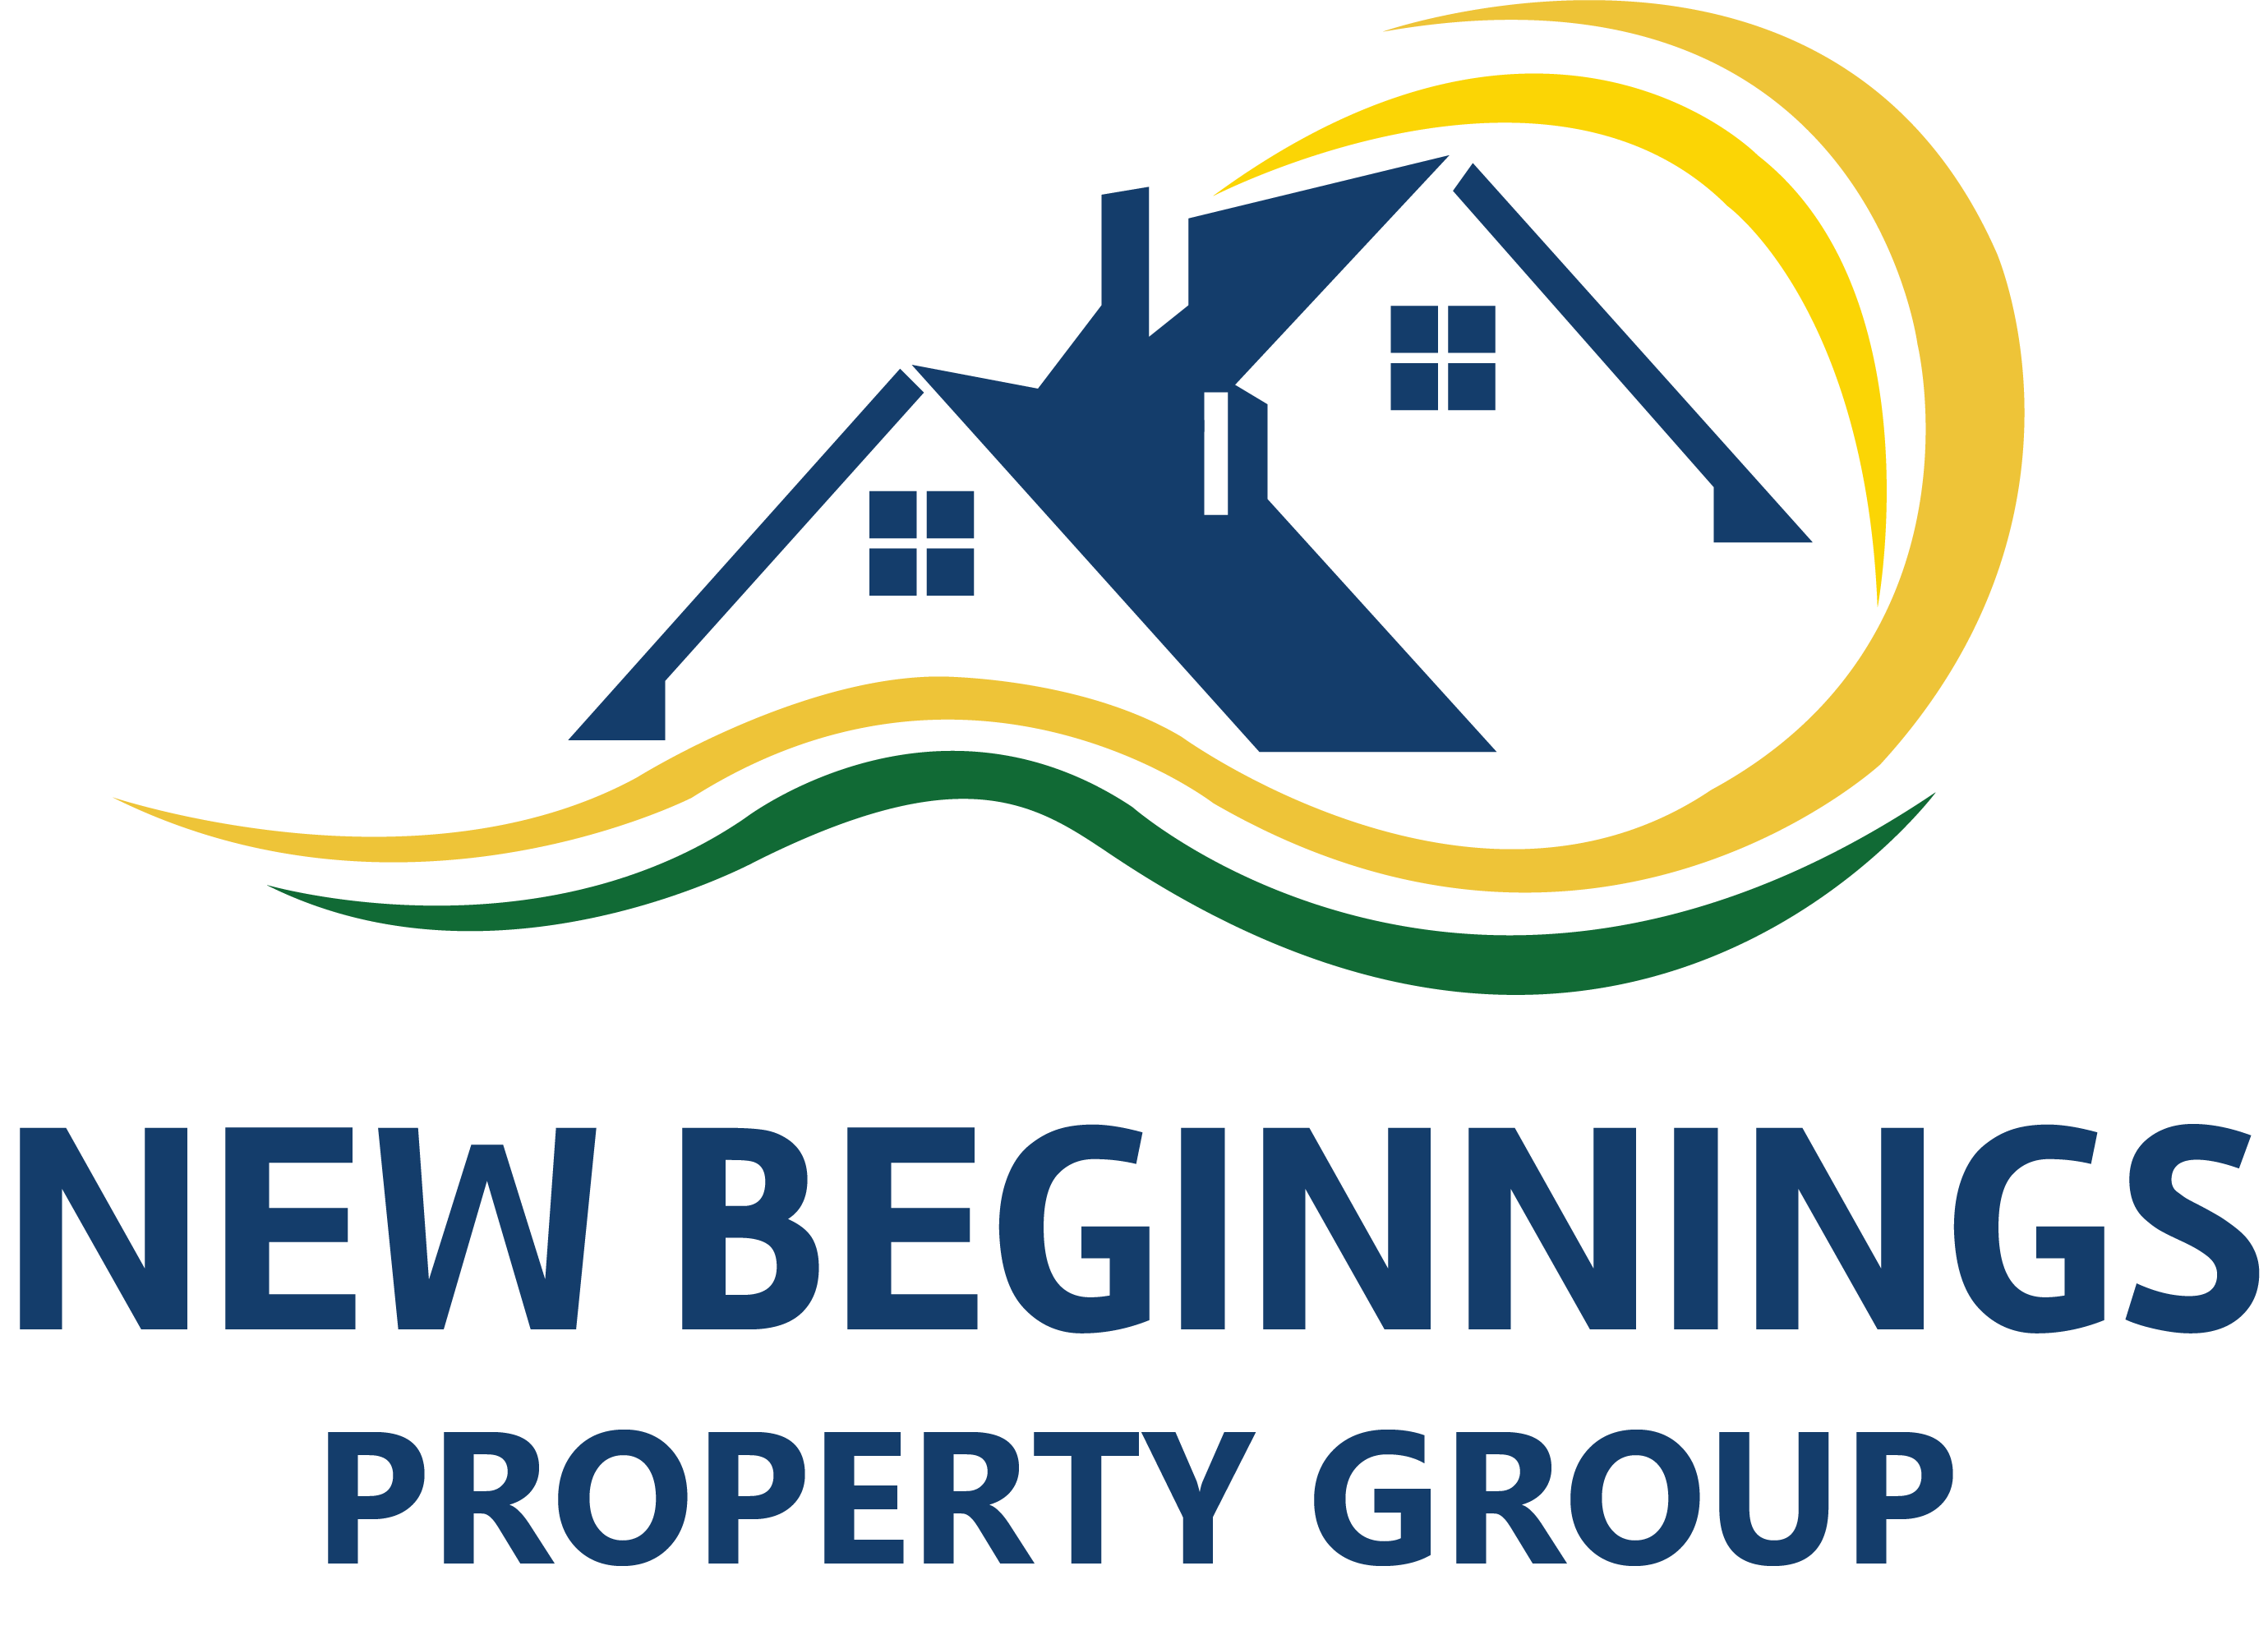 New Beginnings Property Group